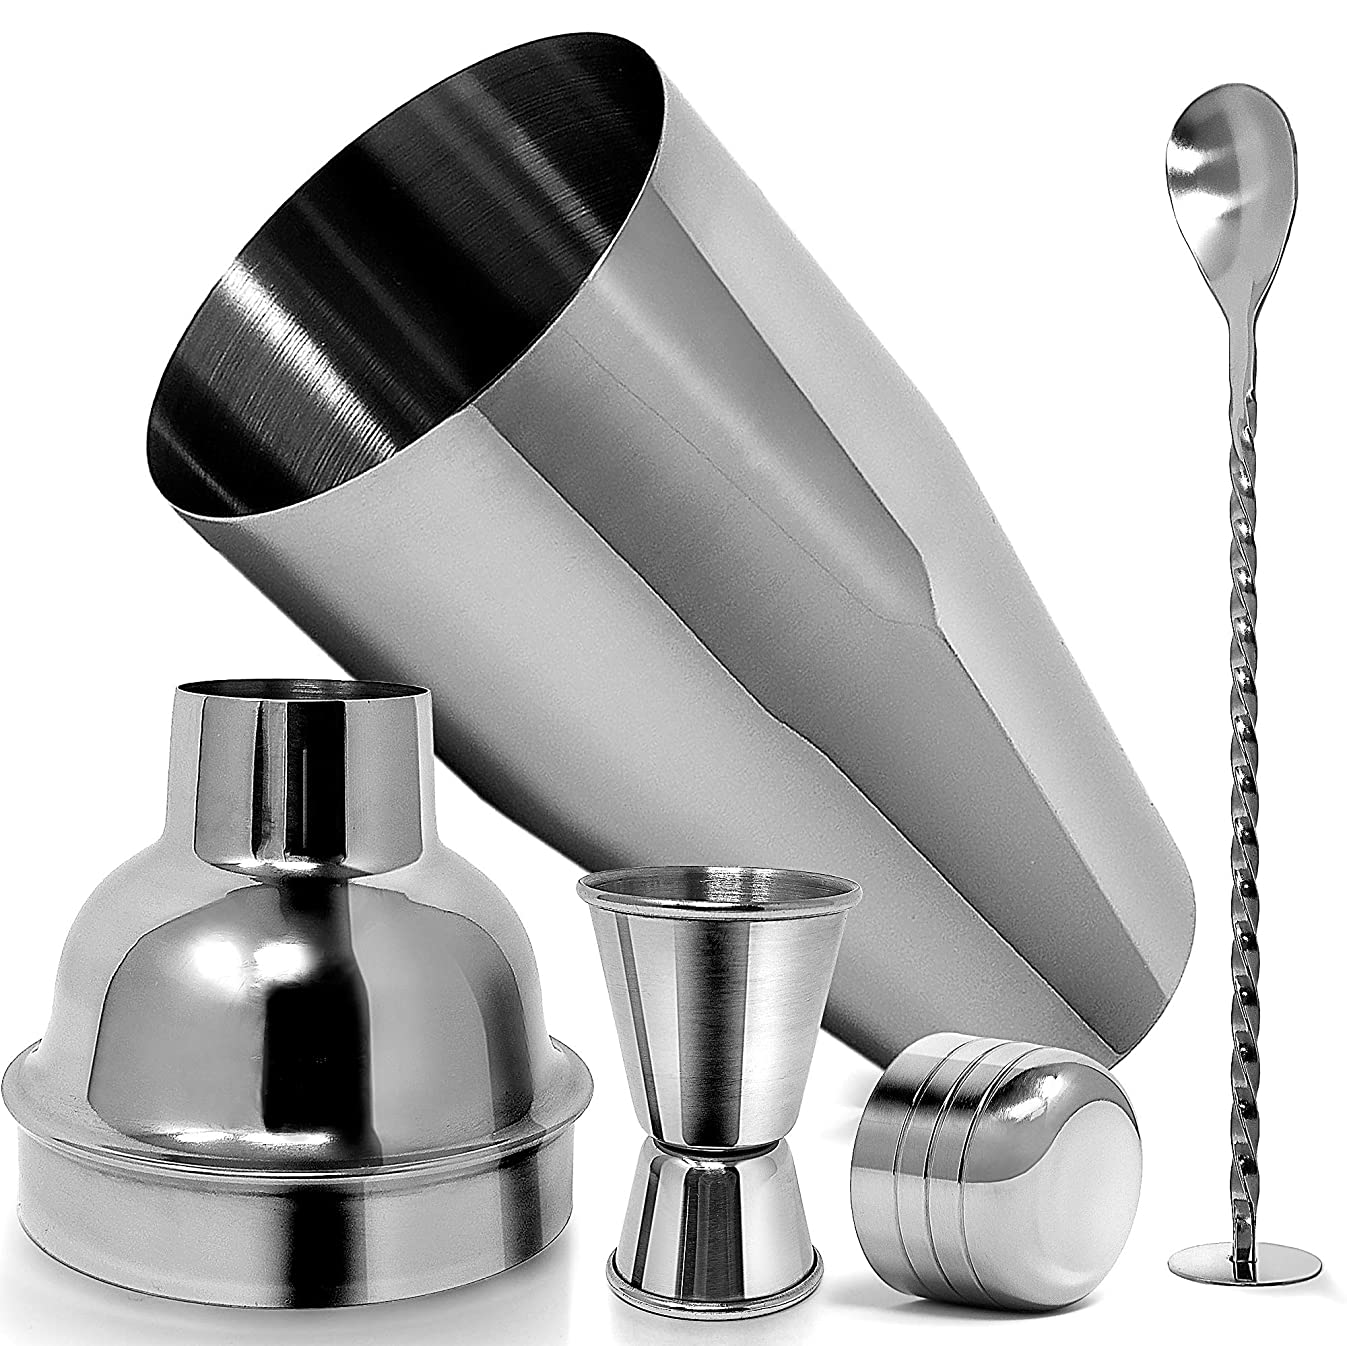 Professional Cocktail Shaker with Accessories - Sleek Martini Shaker with Measuring Jigger & Mixing Spoon - Drink Shaker Bar Set Built-In Strainer - 24 Oz Shaker Set - Best Bar Ware - by Zulay Kitchen